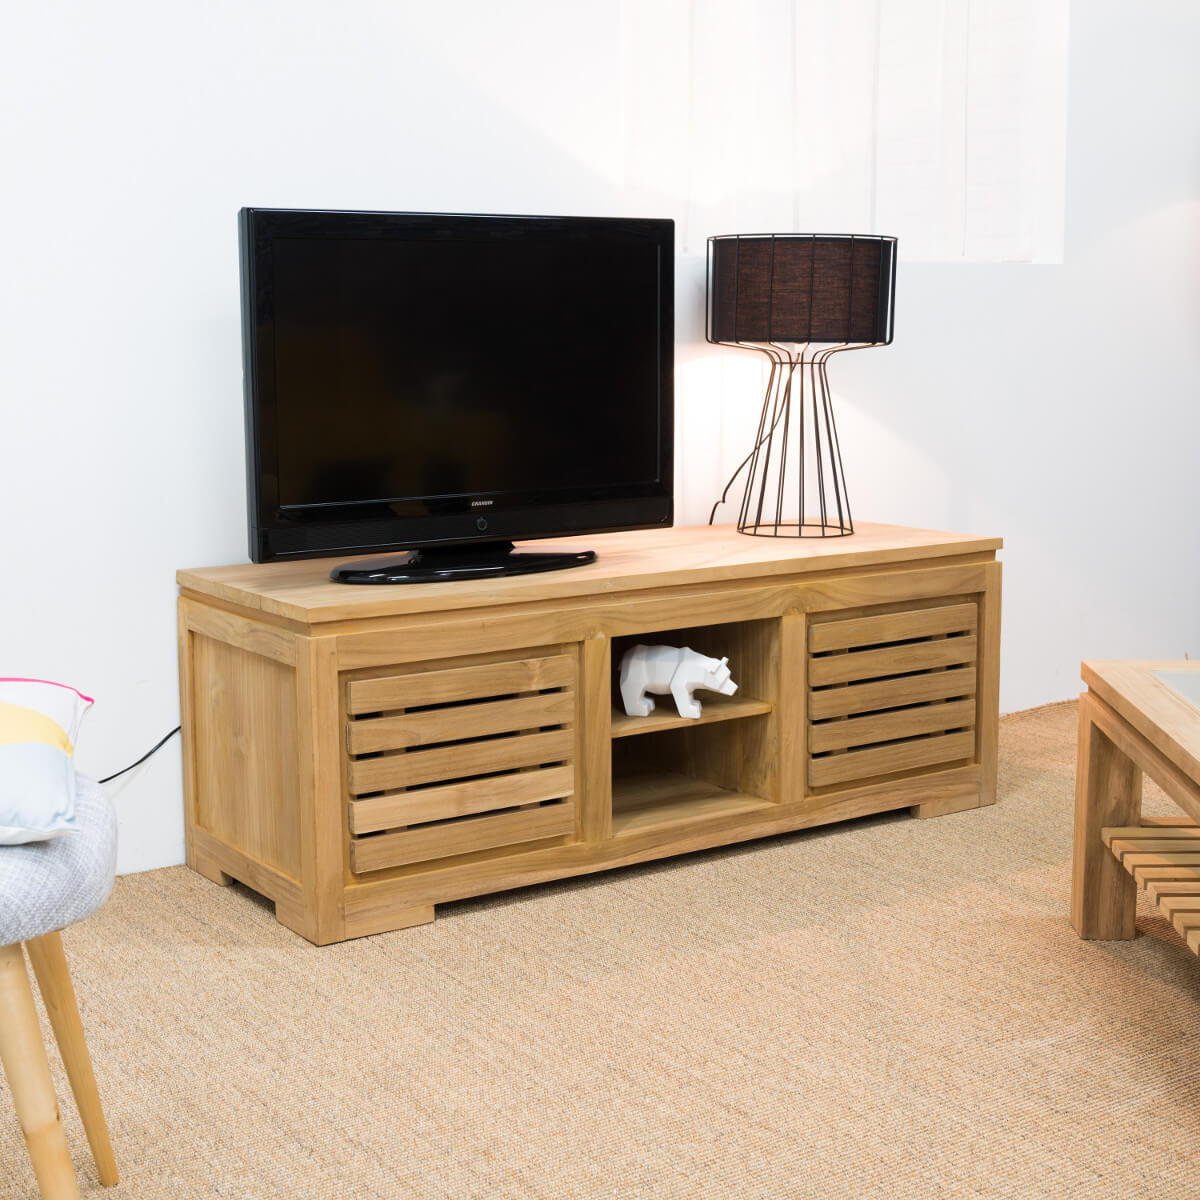 Meuble tv teck meuble tv bois naturel rectangle zen for Zen et nature meuble